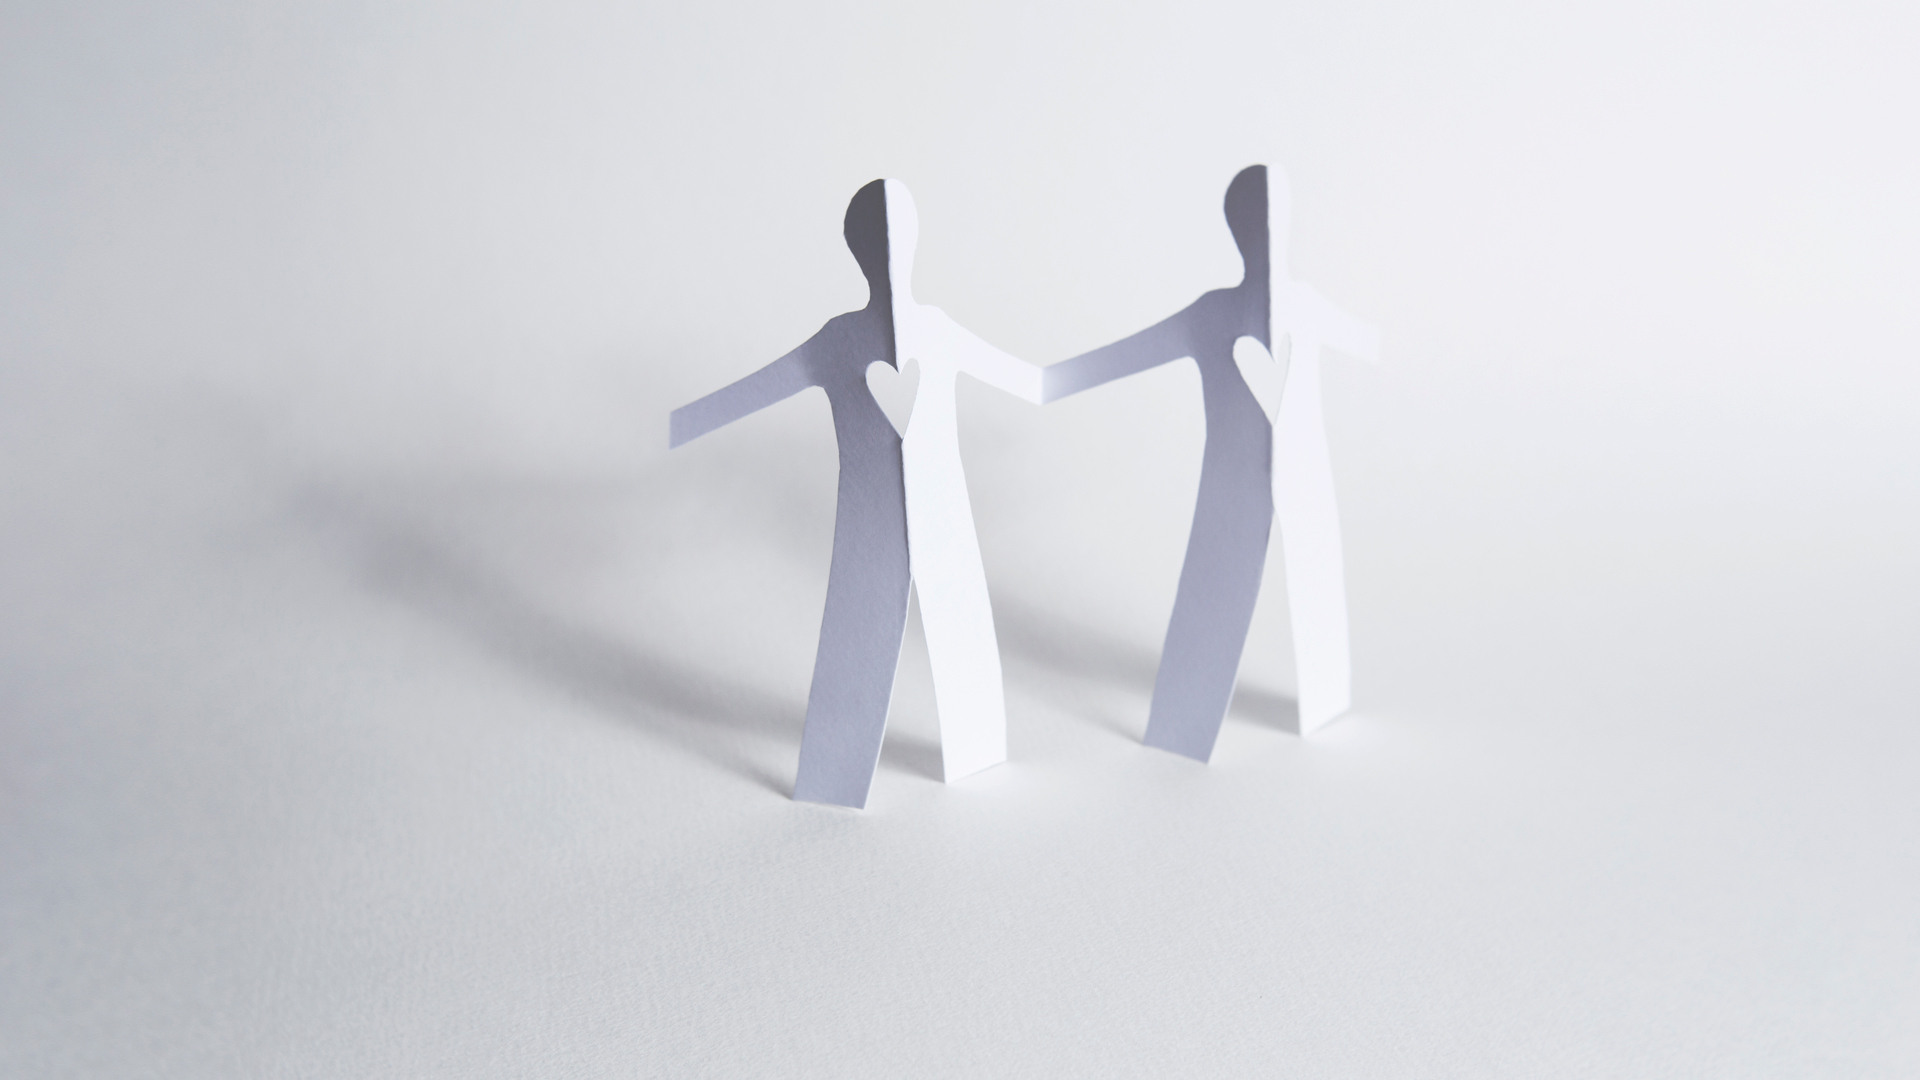 Paper cut out figures holding hands